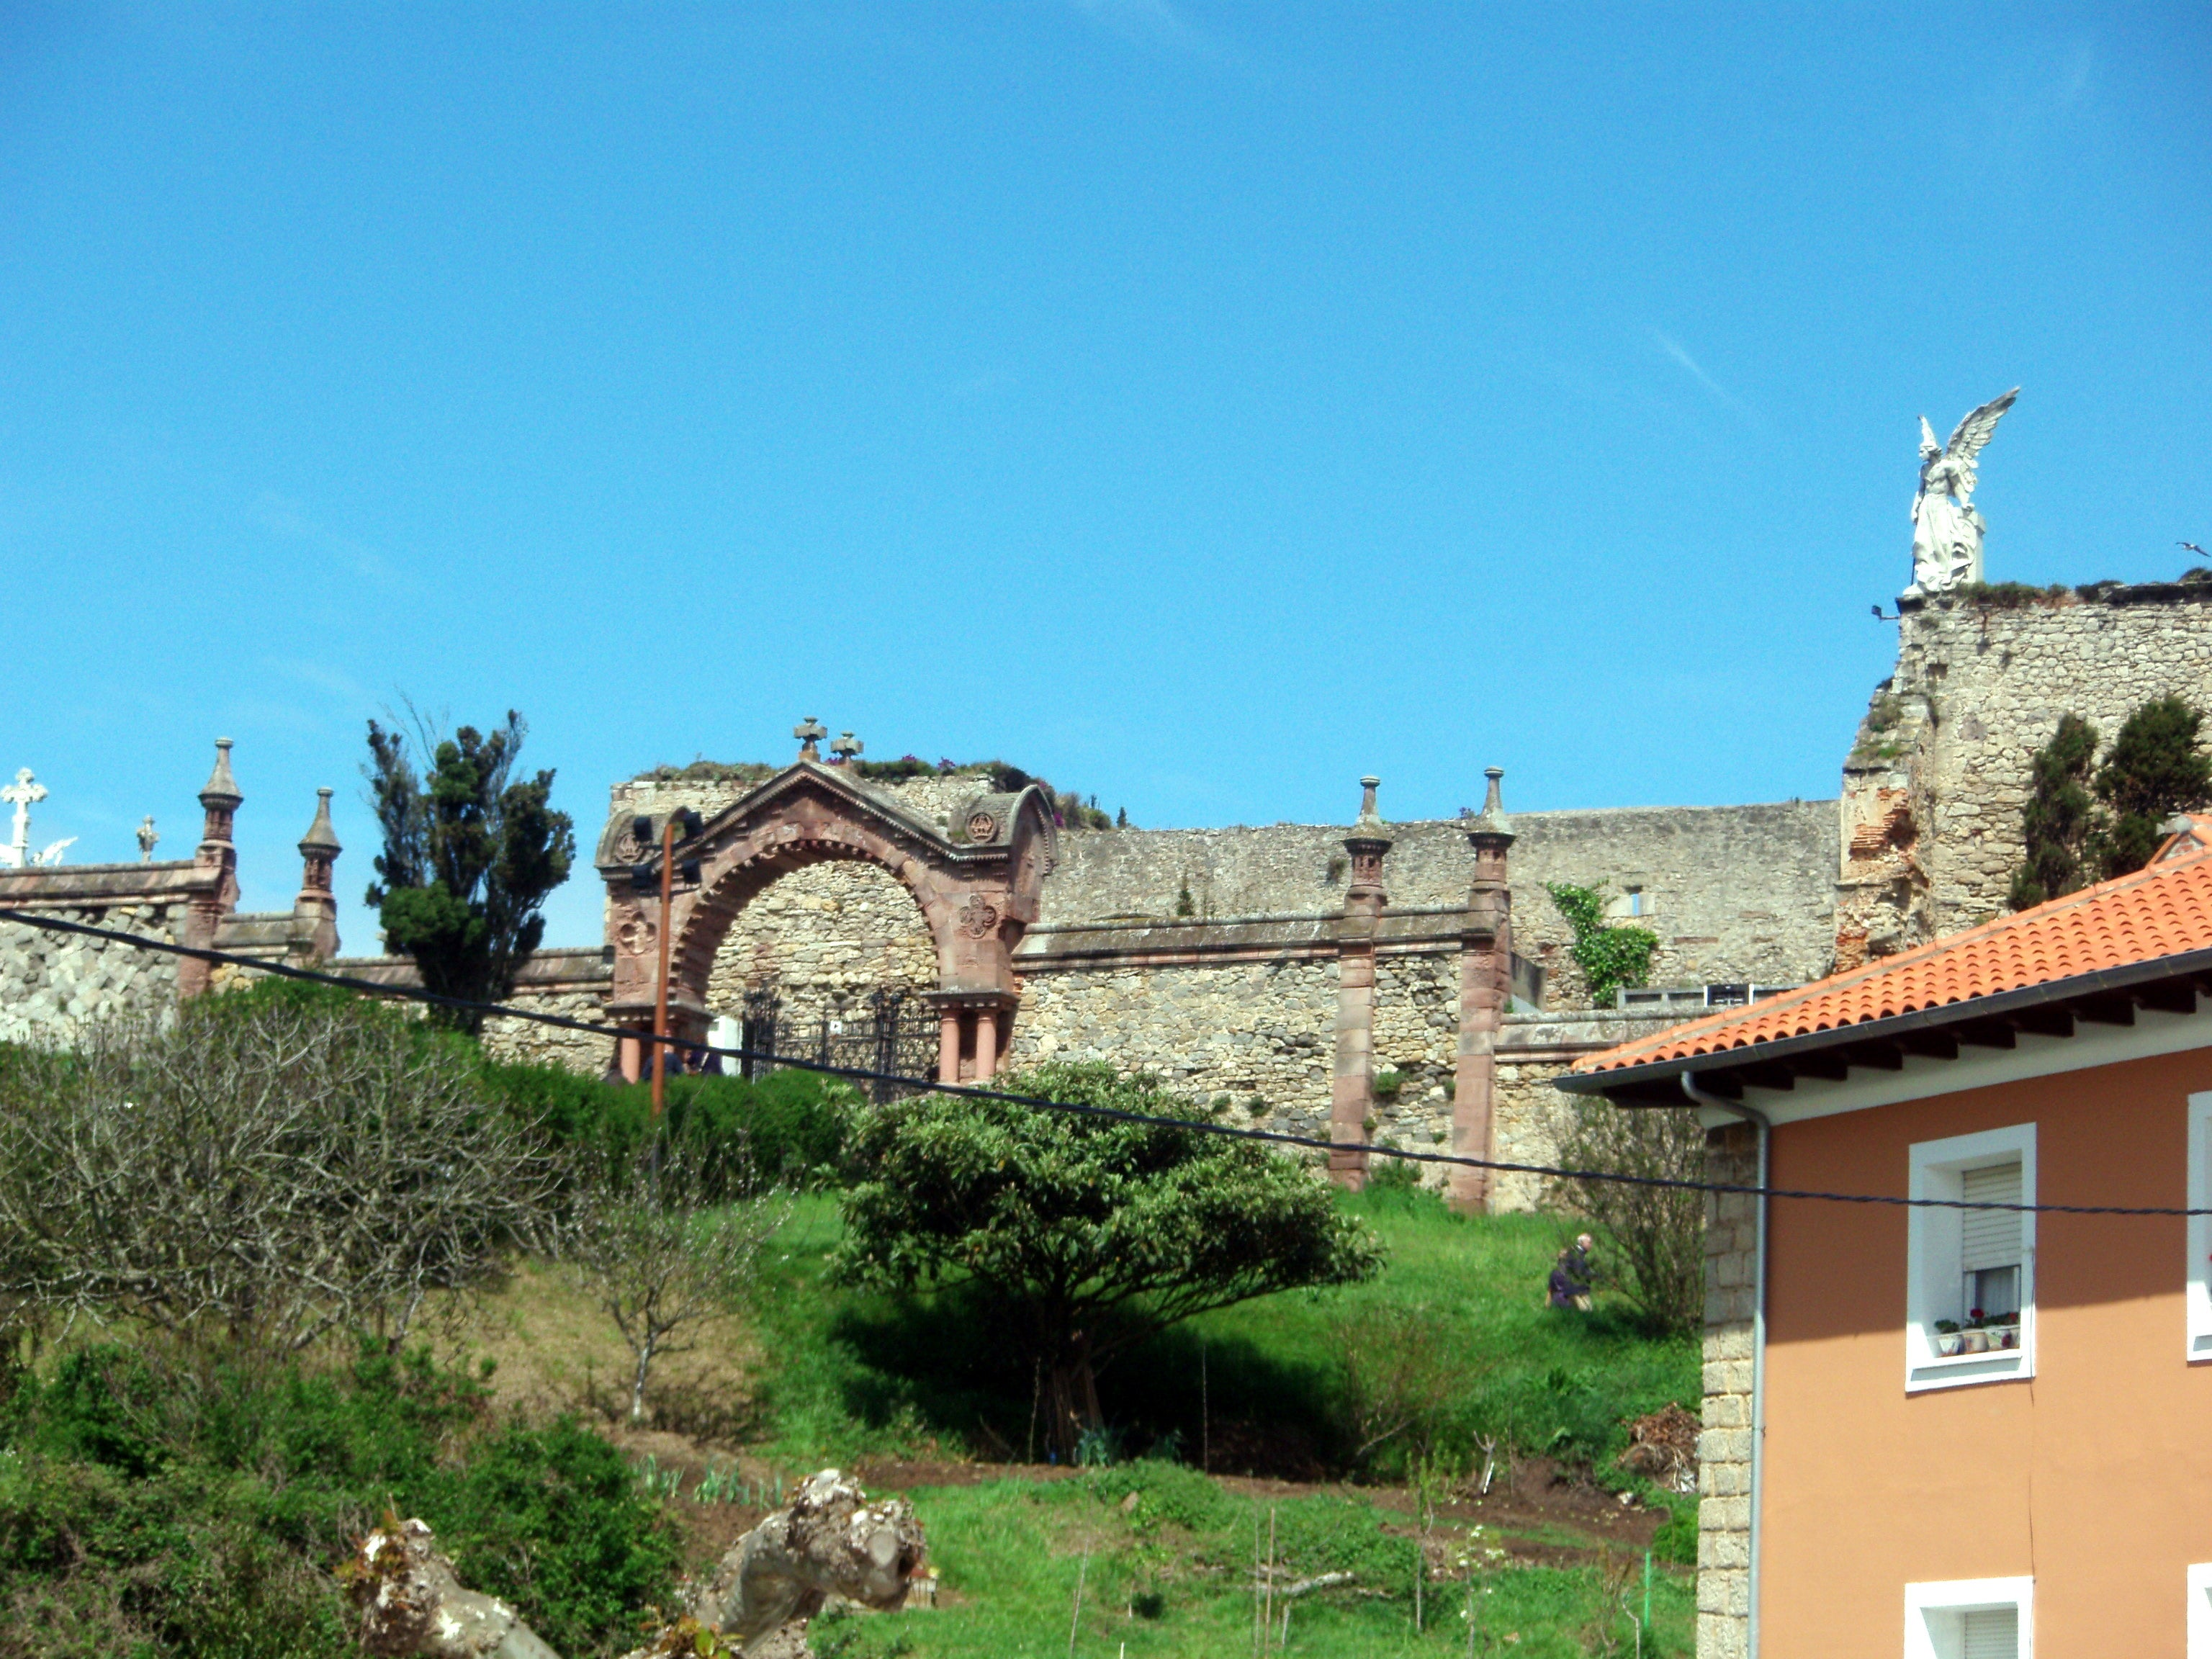 Cemetery of Comillas